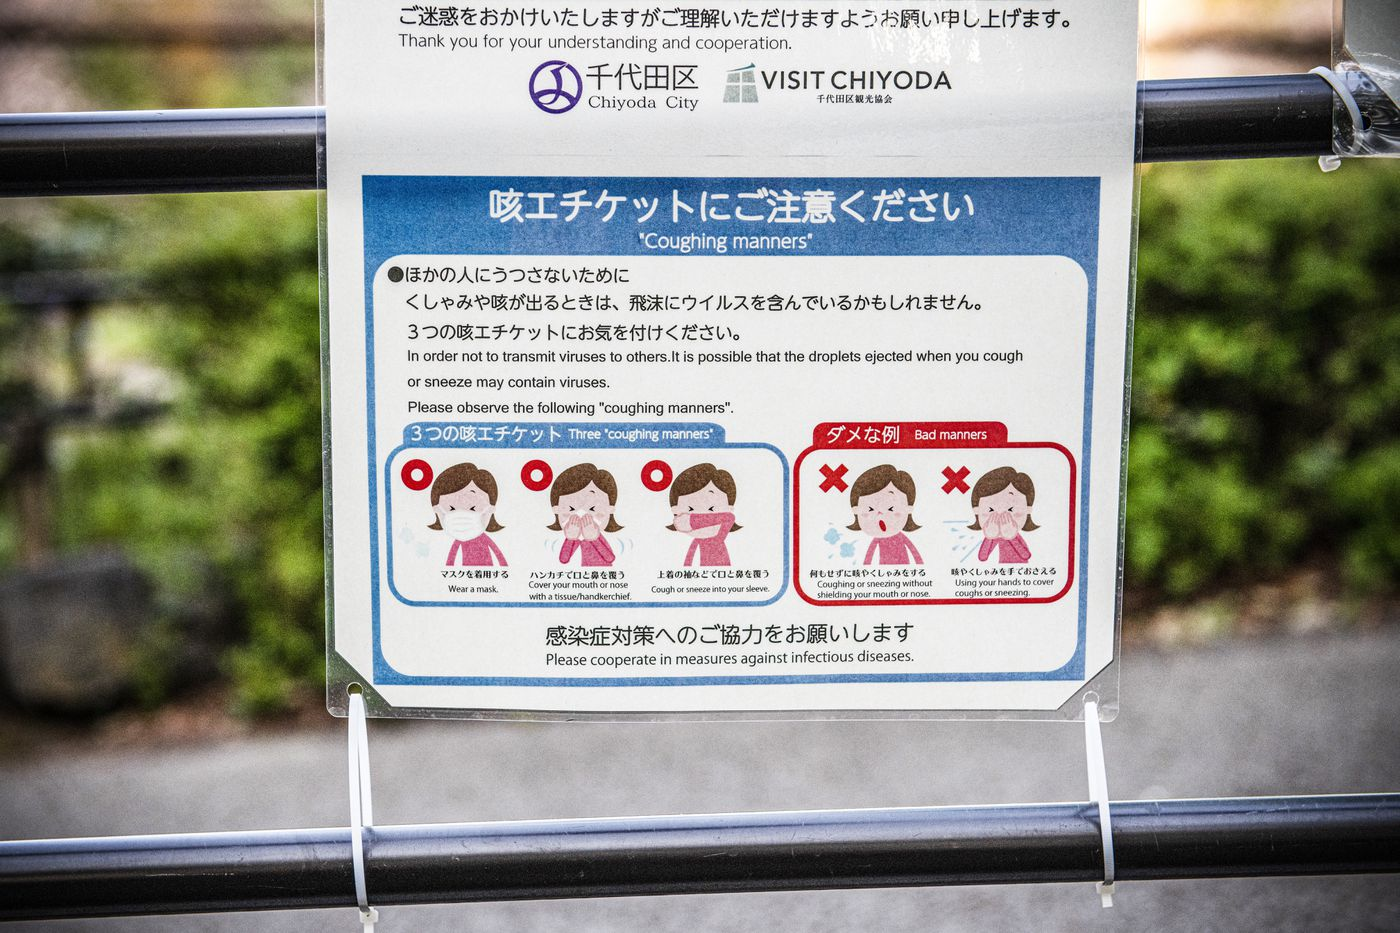 Japan S Relatively Small Coronavirus Case Count May Be A Mirage Vox